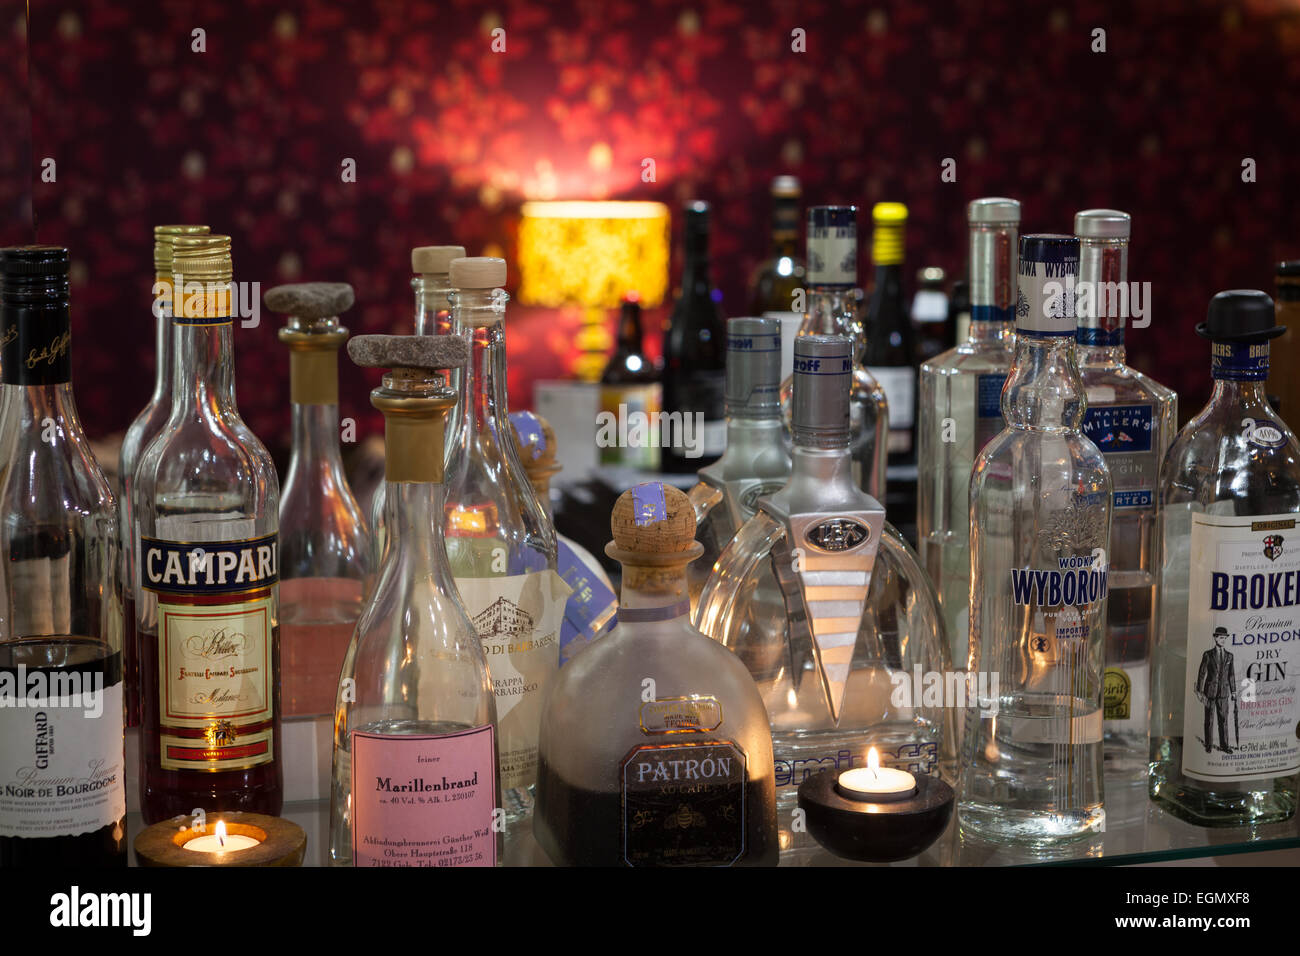 Bar stocked with spirits - Stock Image